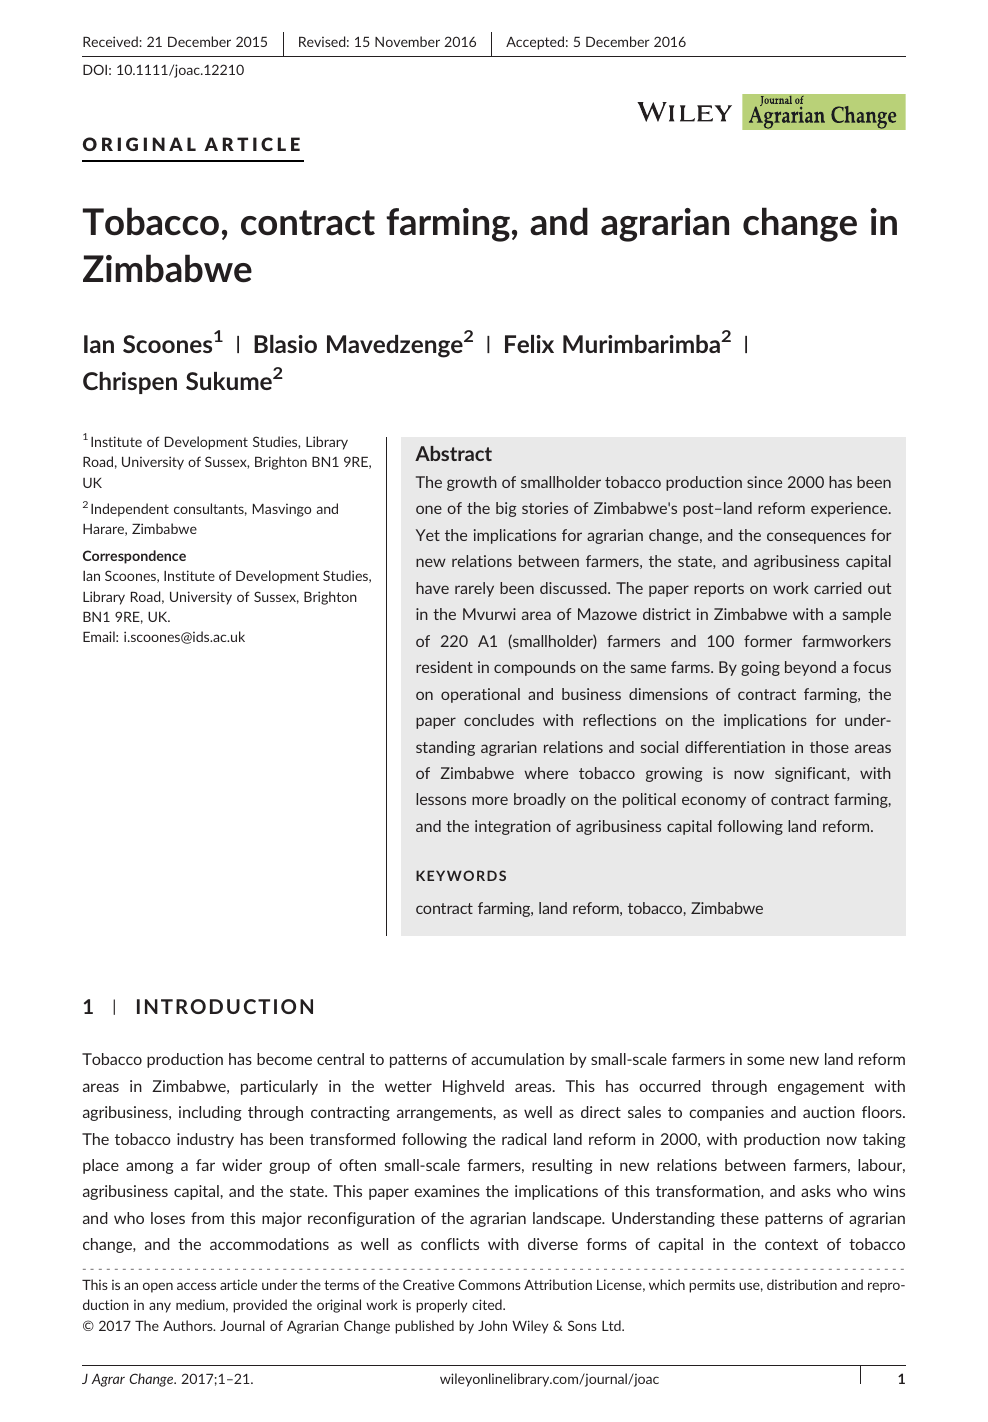 Tobacco, contract farming, and agrarian change in Zimbabwe